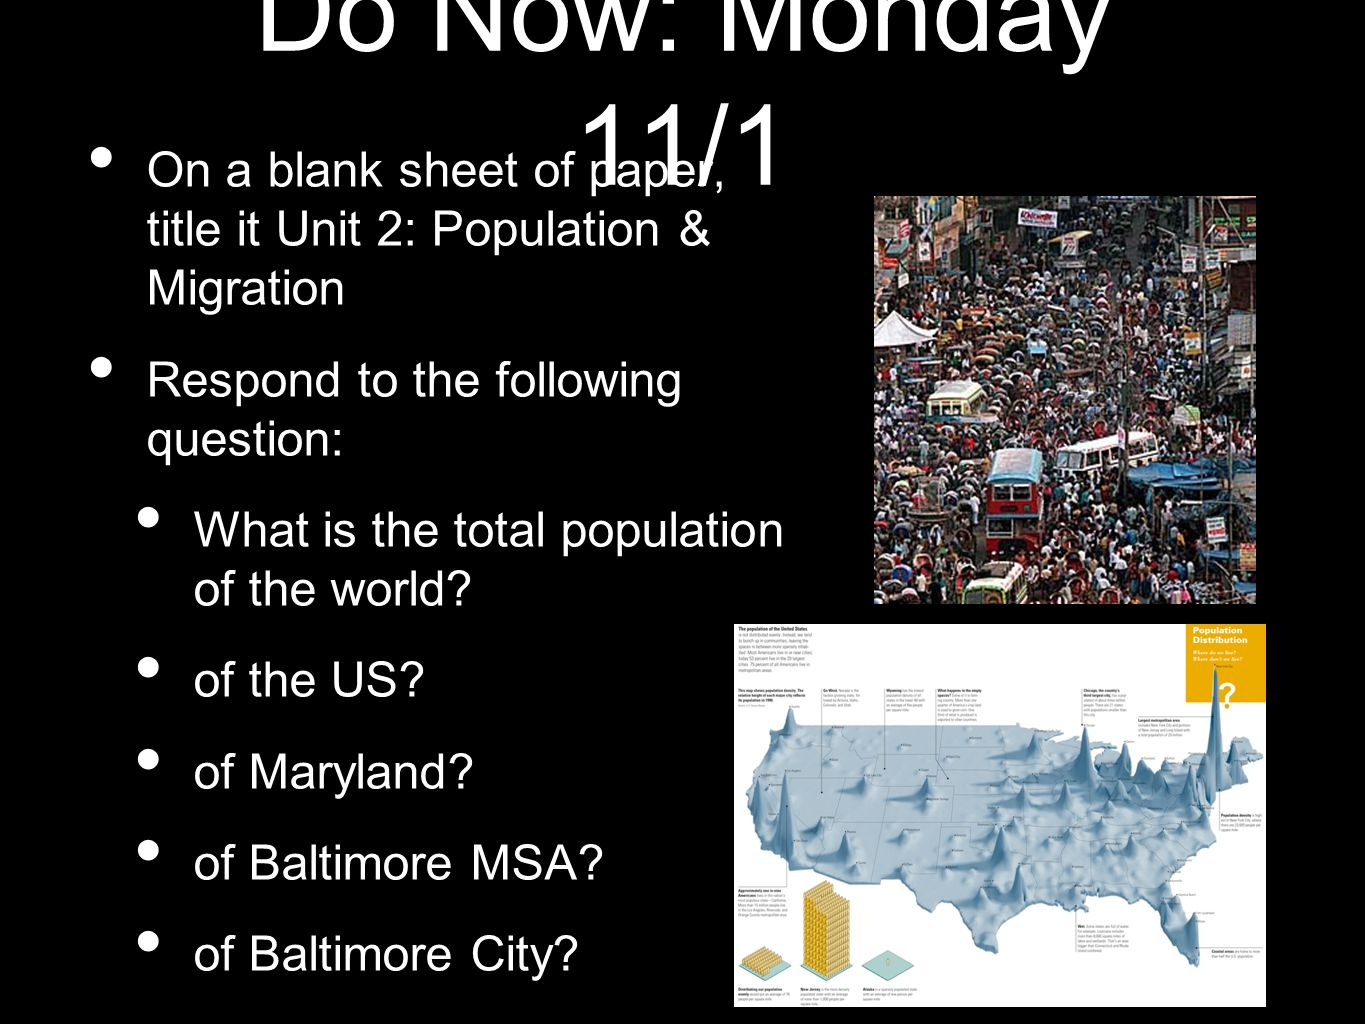 Do Now: Monday 11/1 On a blank sheet of paper, title it Unit 2: Population & Migration Respond to the following question: What is the total population